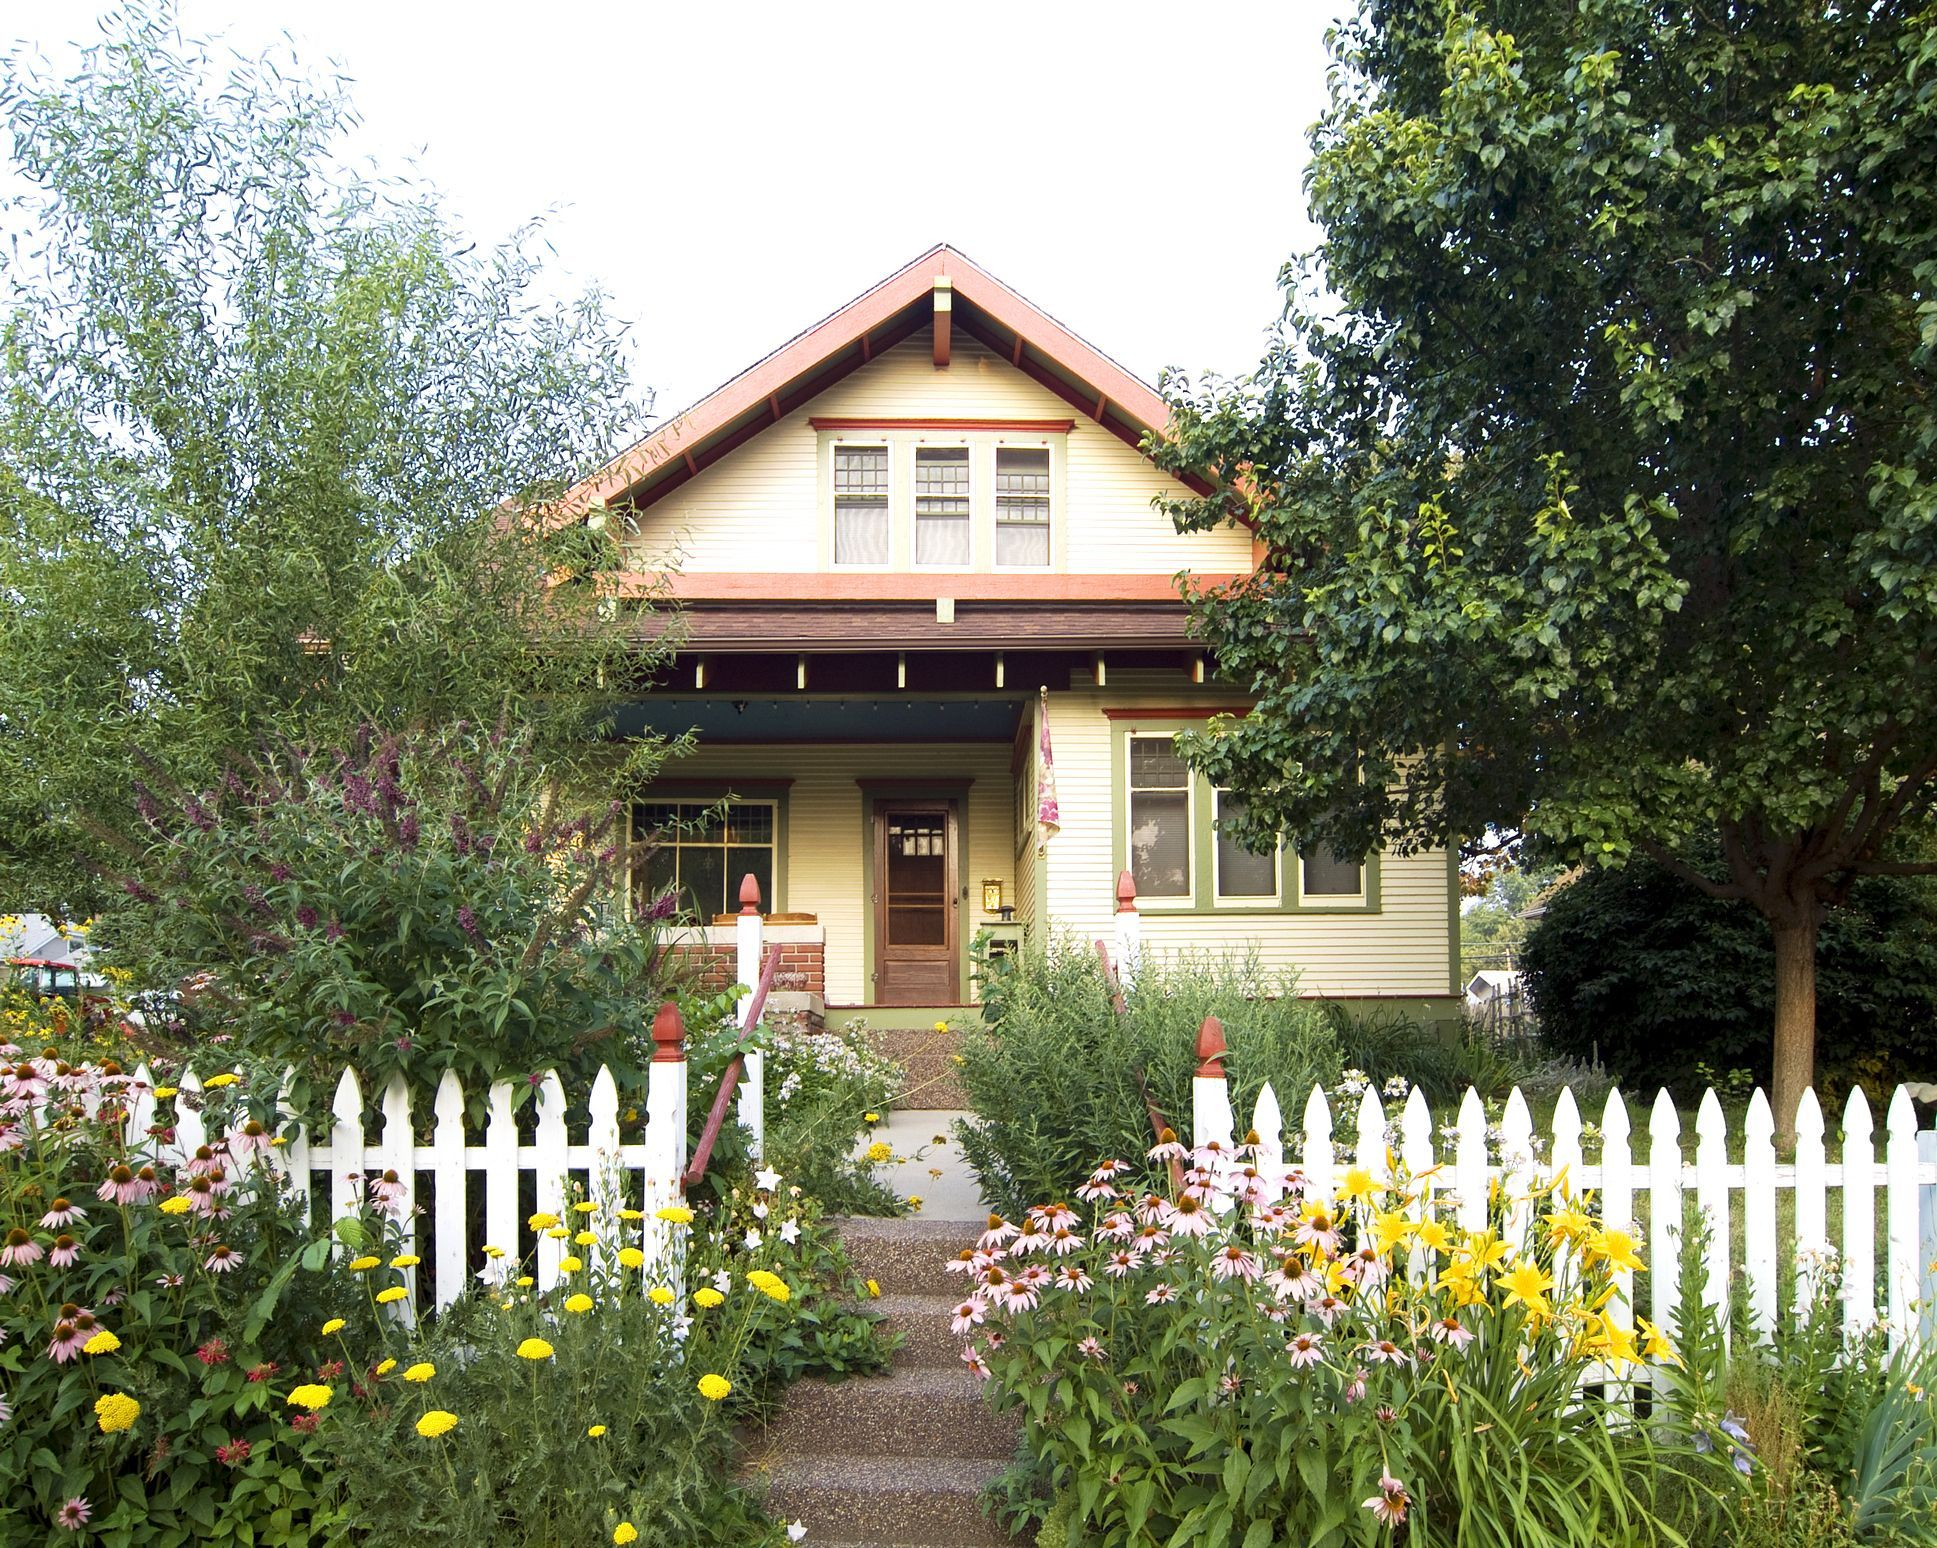 White-picket-fence-hidden-among-the-flowers